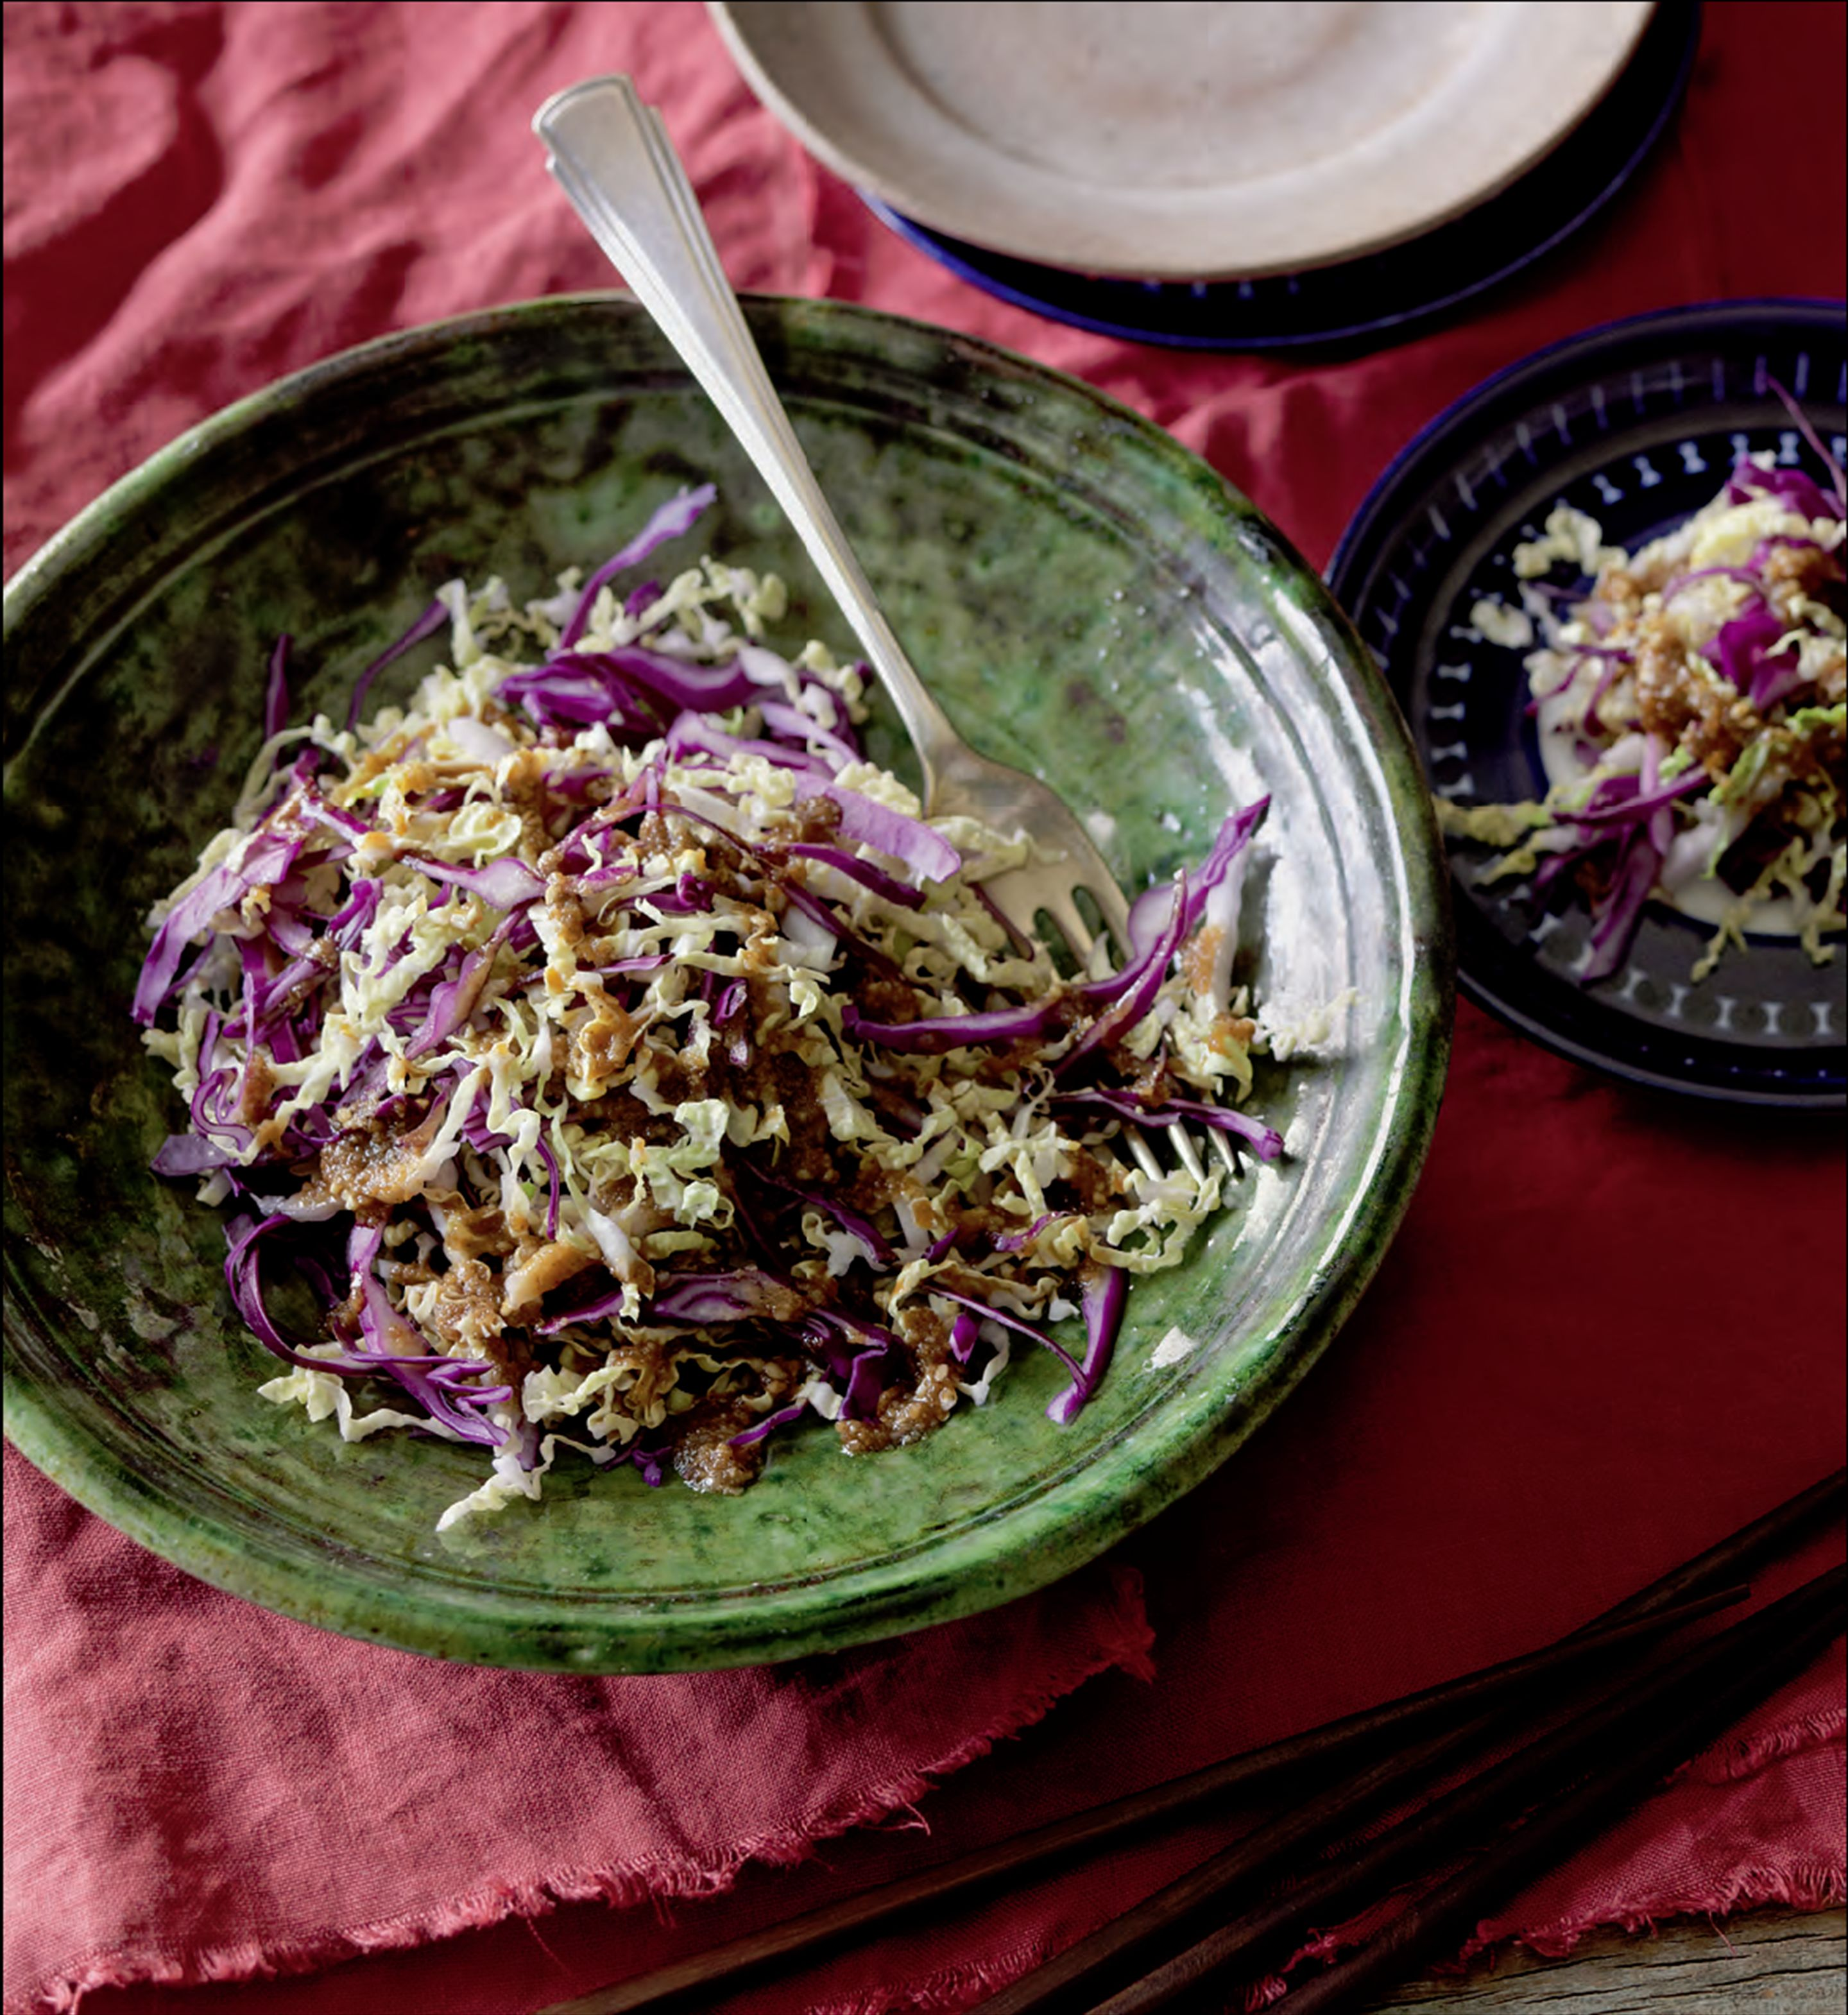 Cabbage salad with sesame dressing